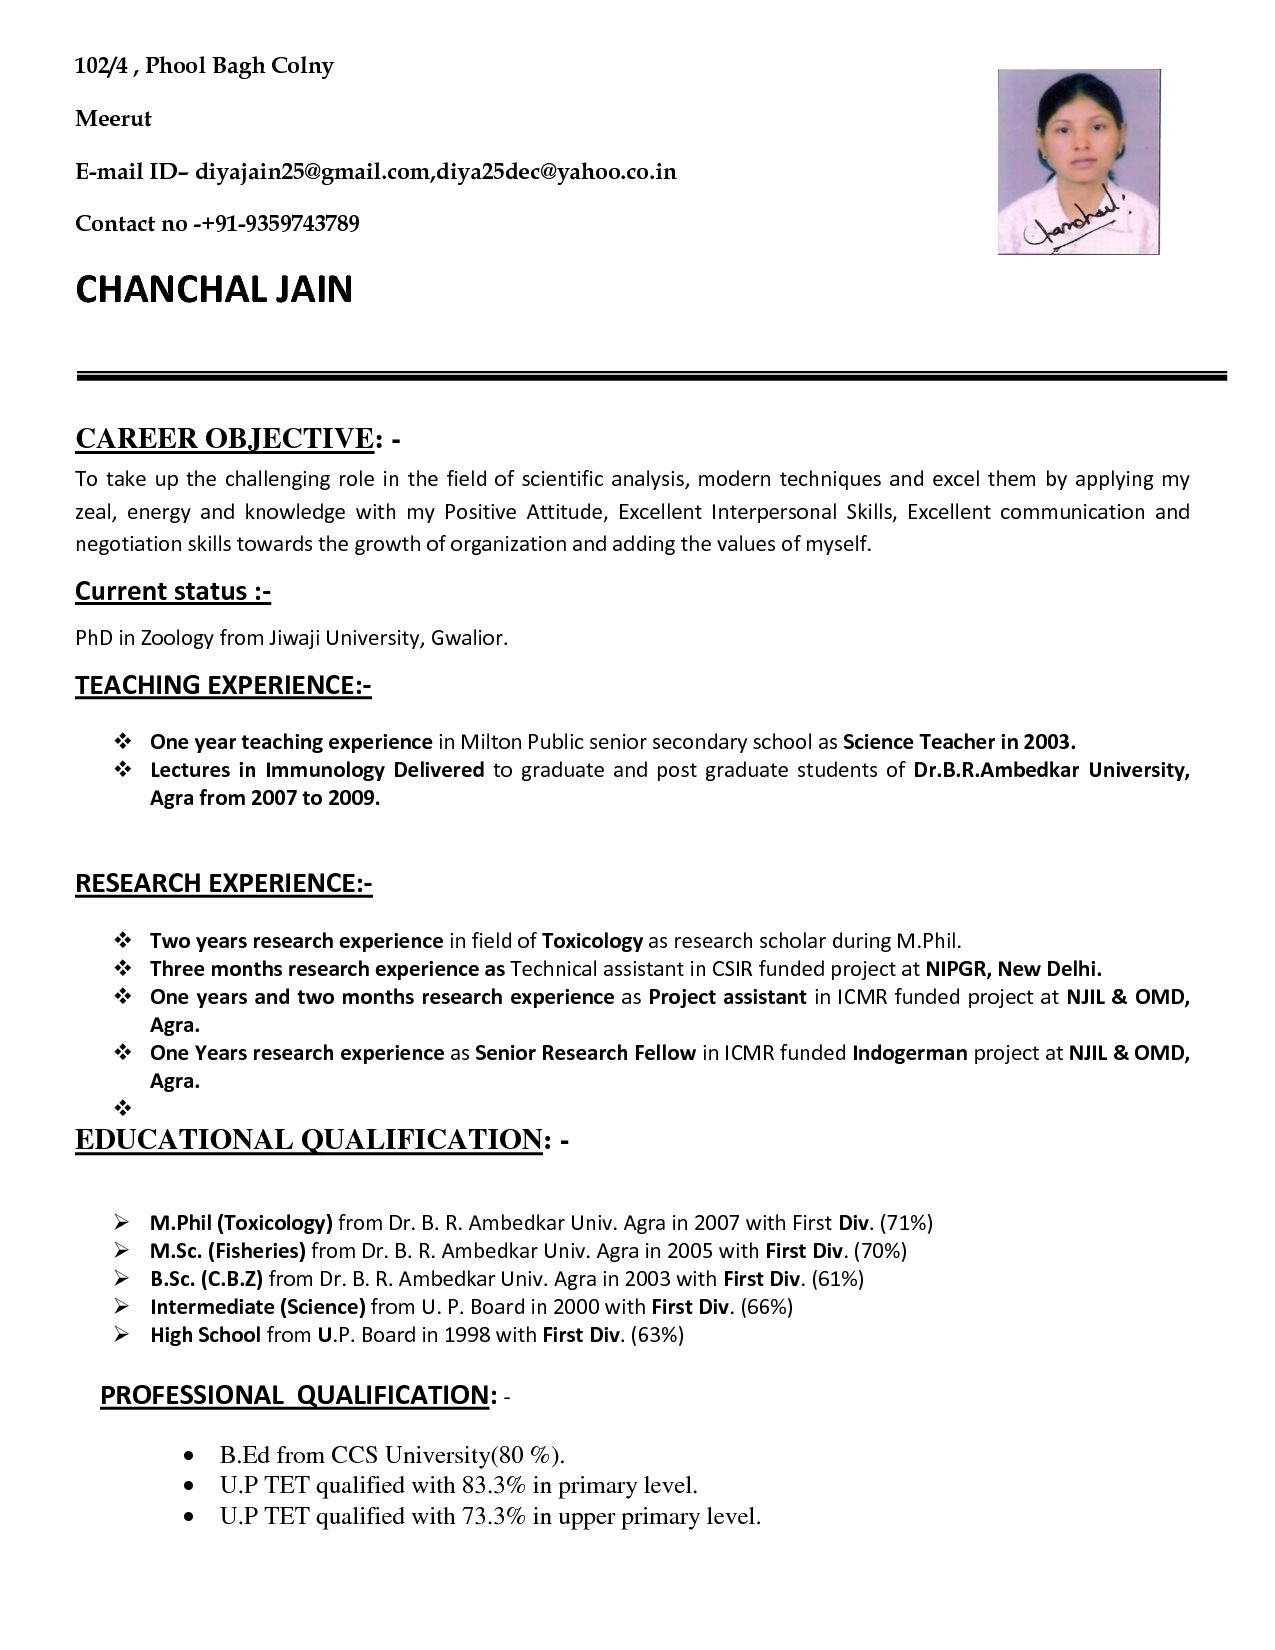 resume format for school teacher job it resume cover letter sample biodata sample for teacher